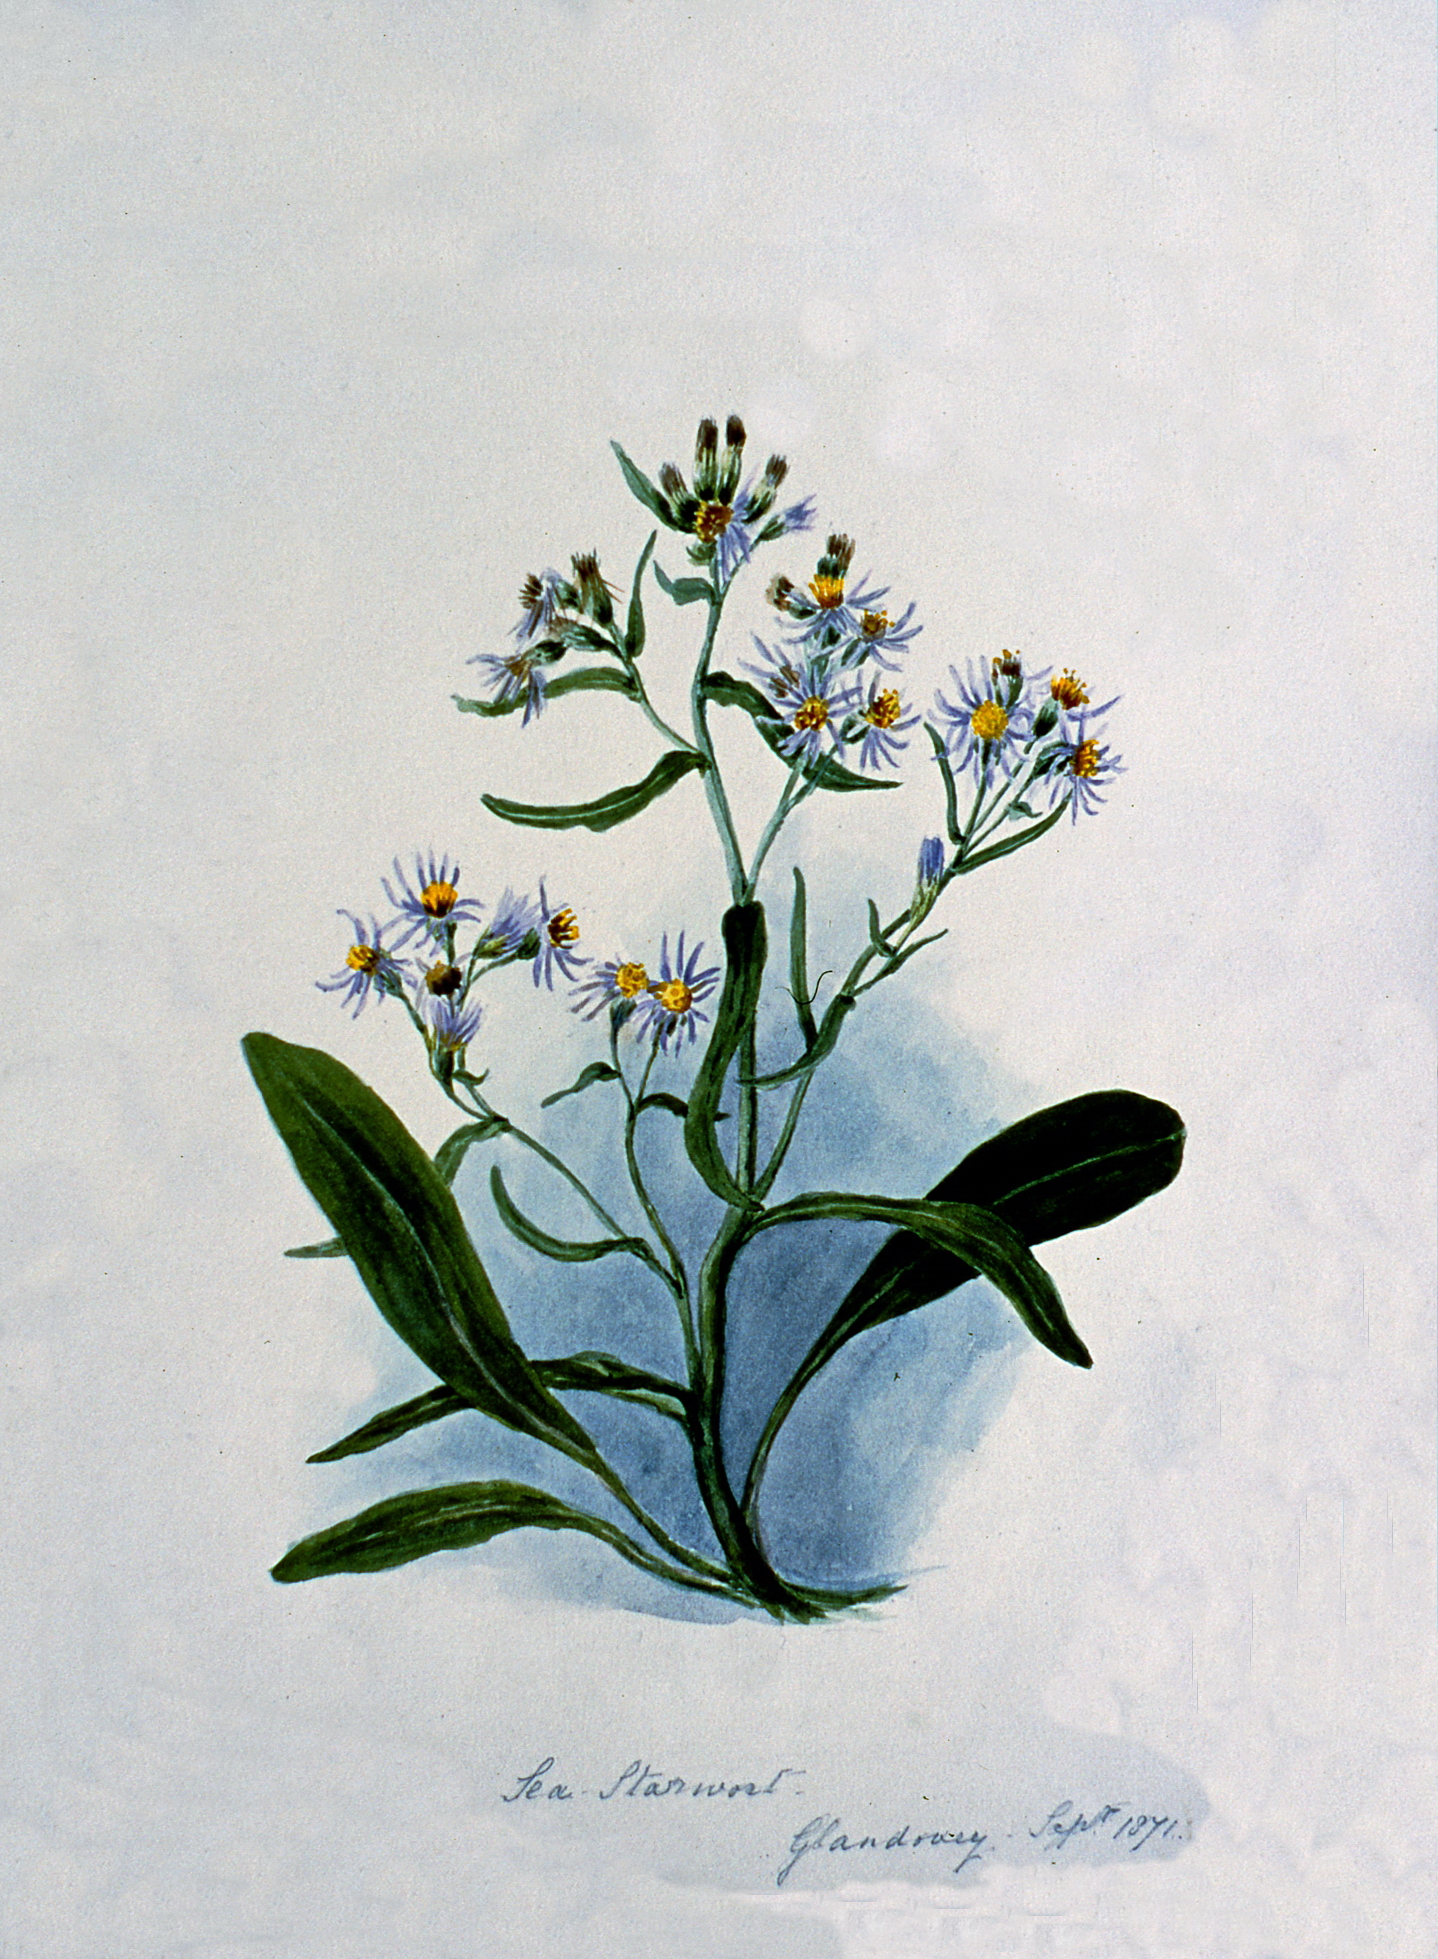 Sea Star Wort - Glandovey Sept 1871 , September 1871, Julia Bullock Webster, watercolour on paper, 35.5 cm x 25.7 cm, 2003.02.28, gift of The Grist Mill at Keremeos